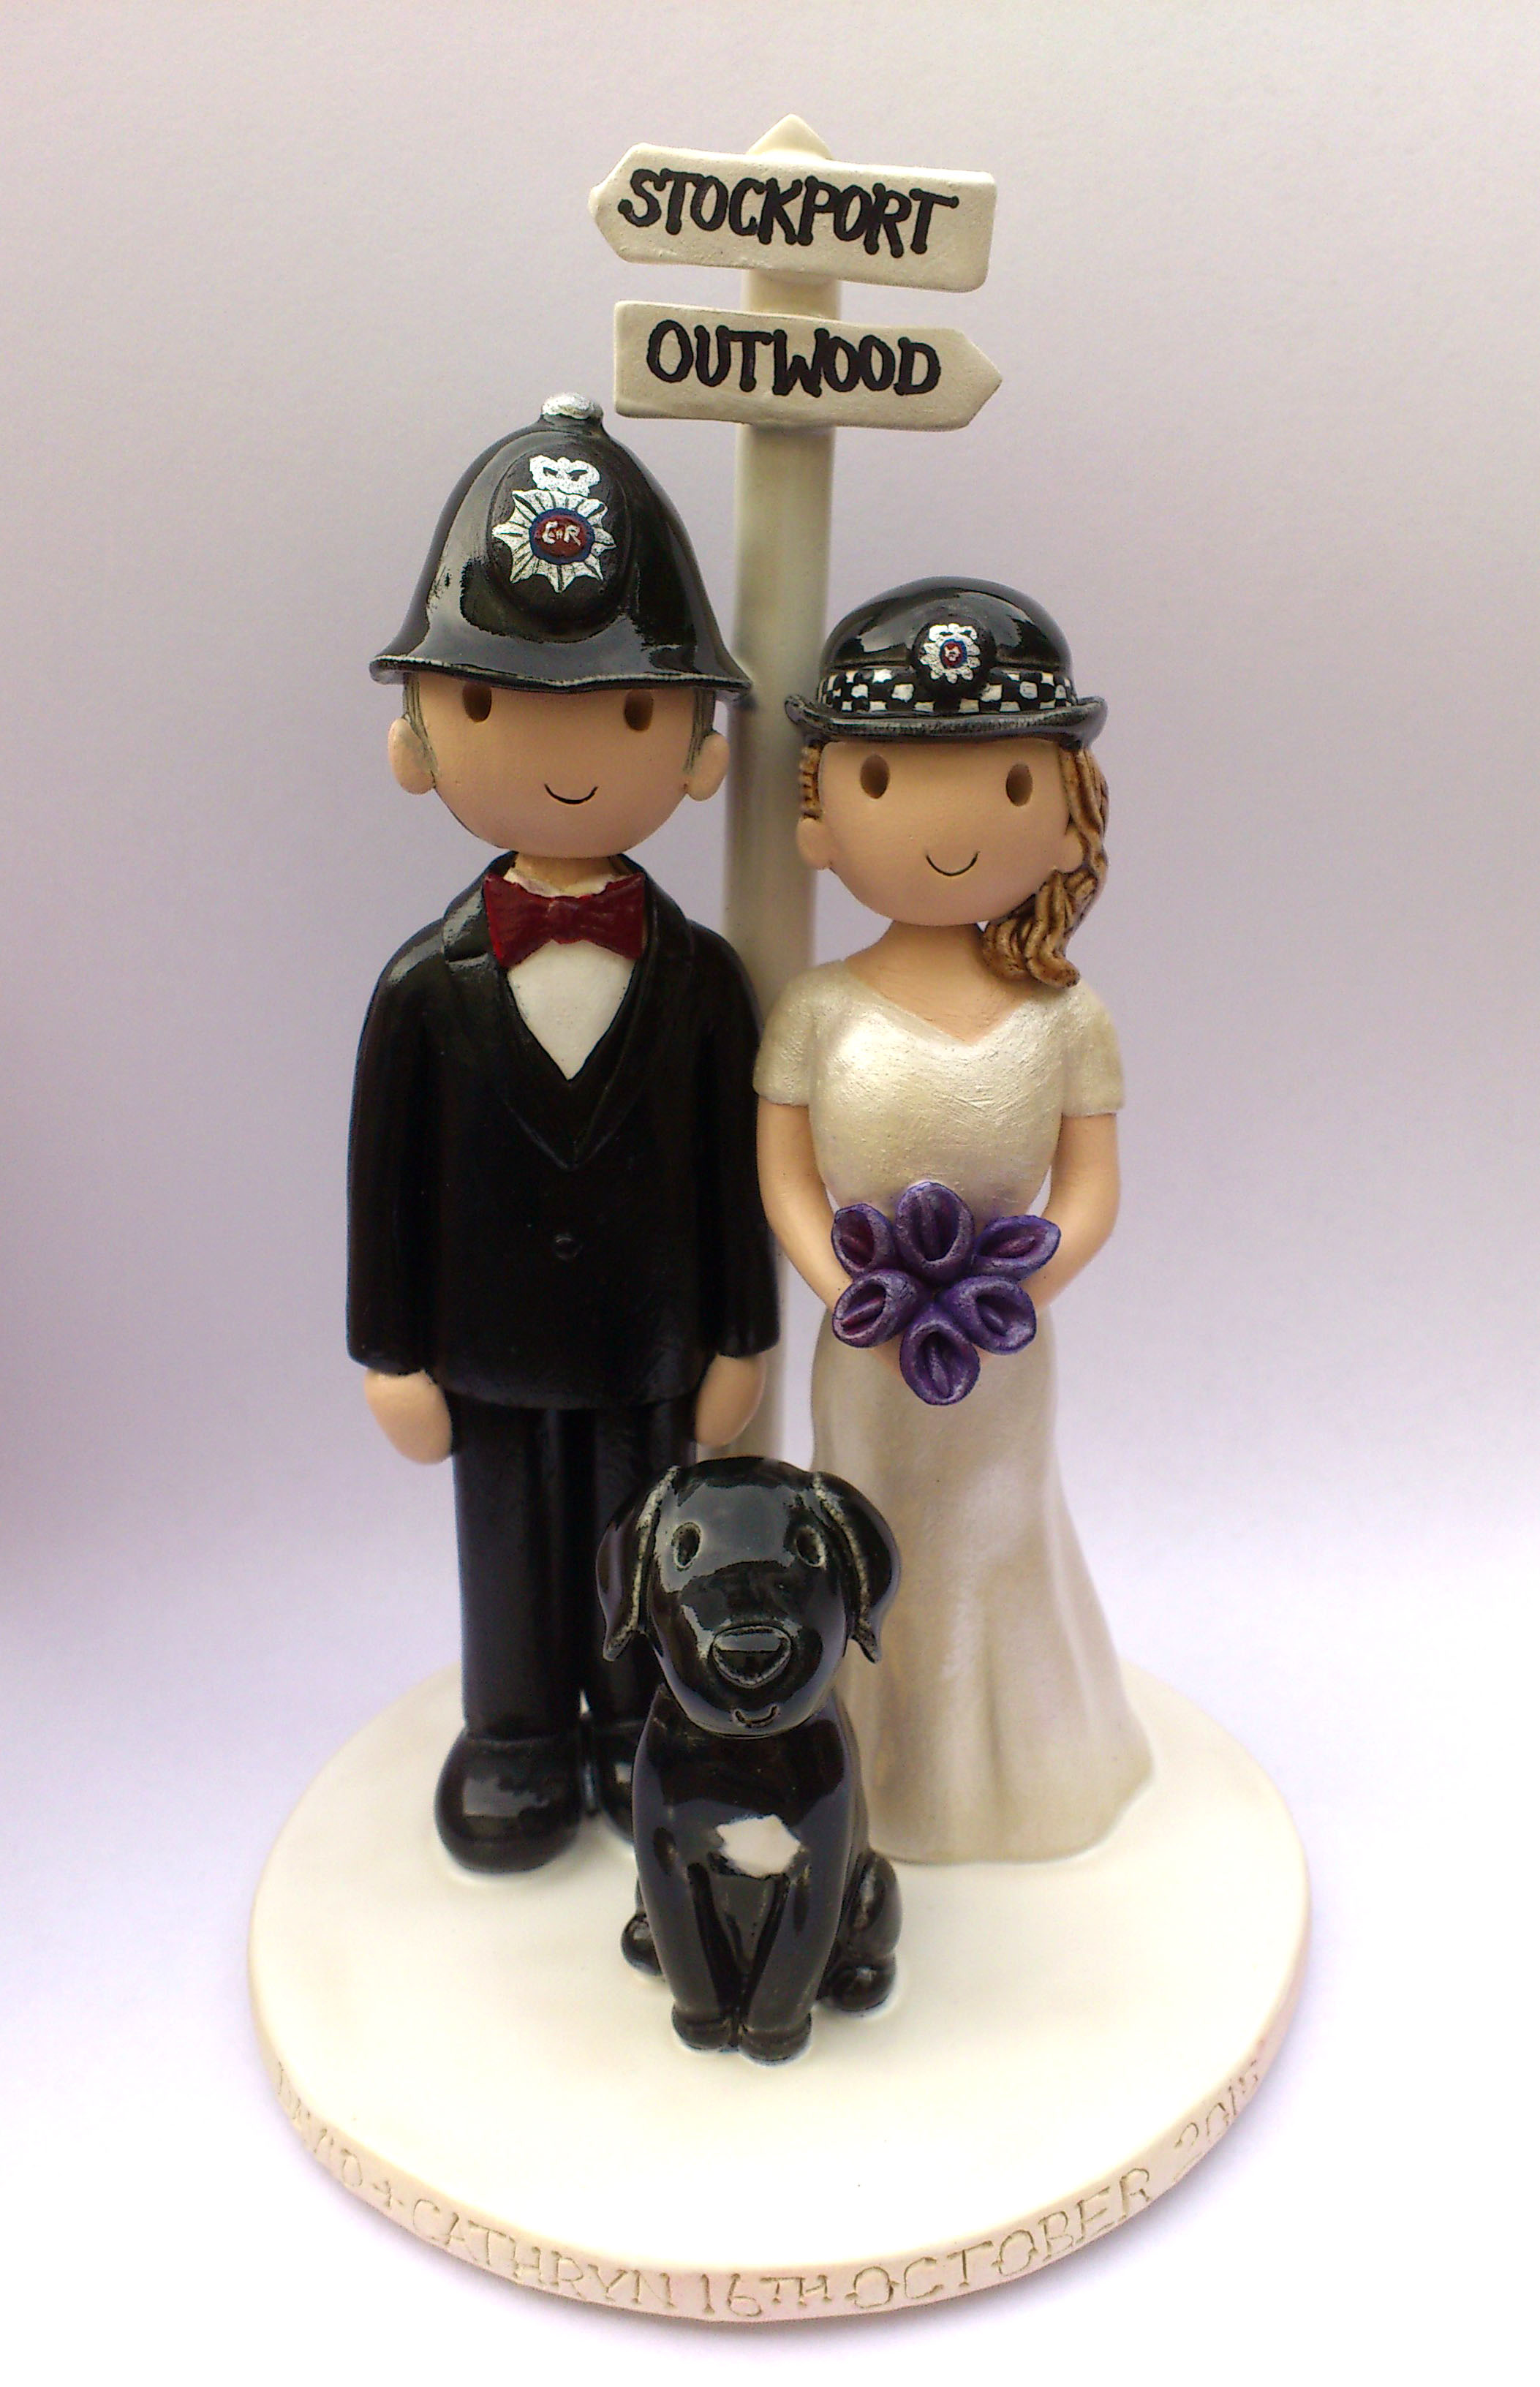 Cake Toppers In Uk : Wedding Cake Toppers Gallery. Hand Made, Personalised Cake ...